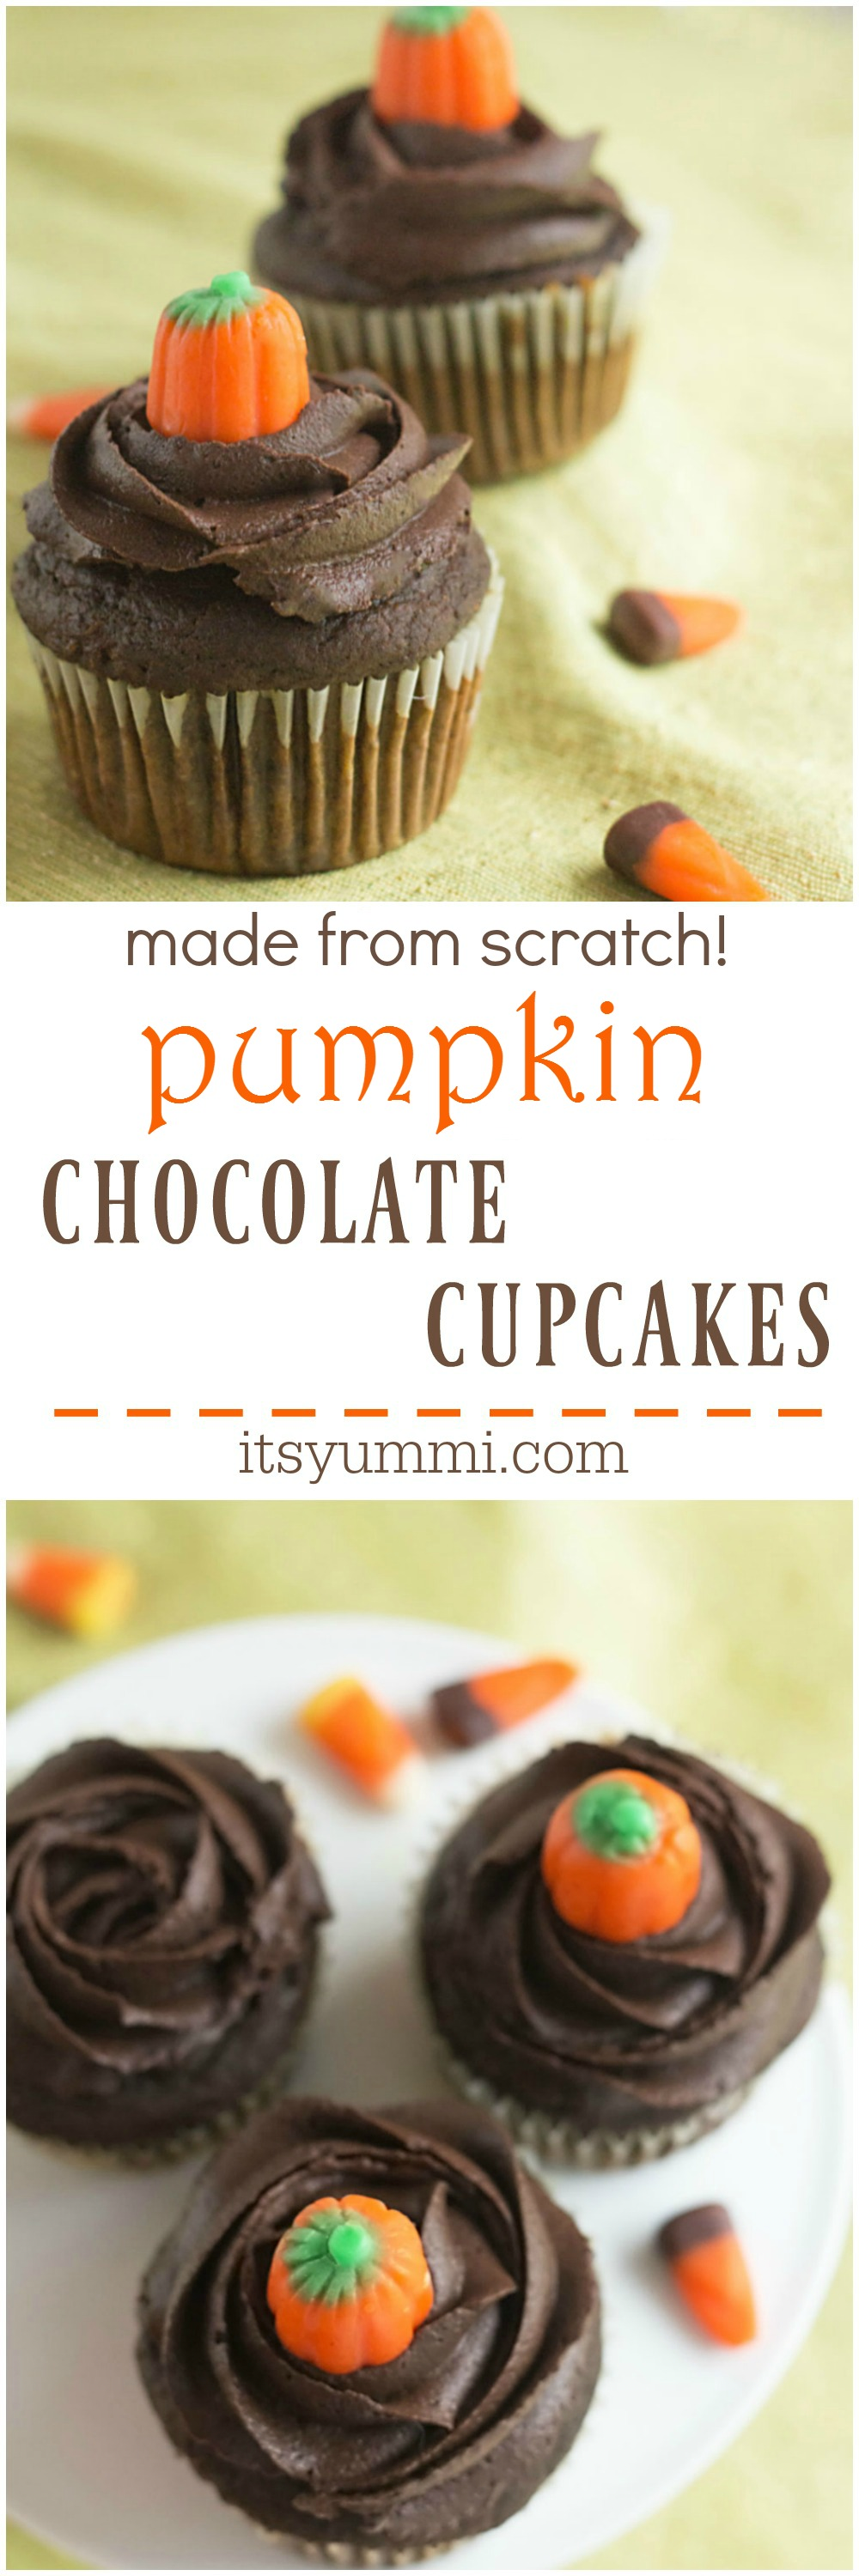 Pumpkin Chocolate Cupcakes | Its Yummi